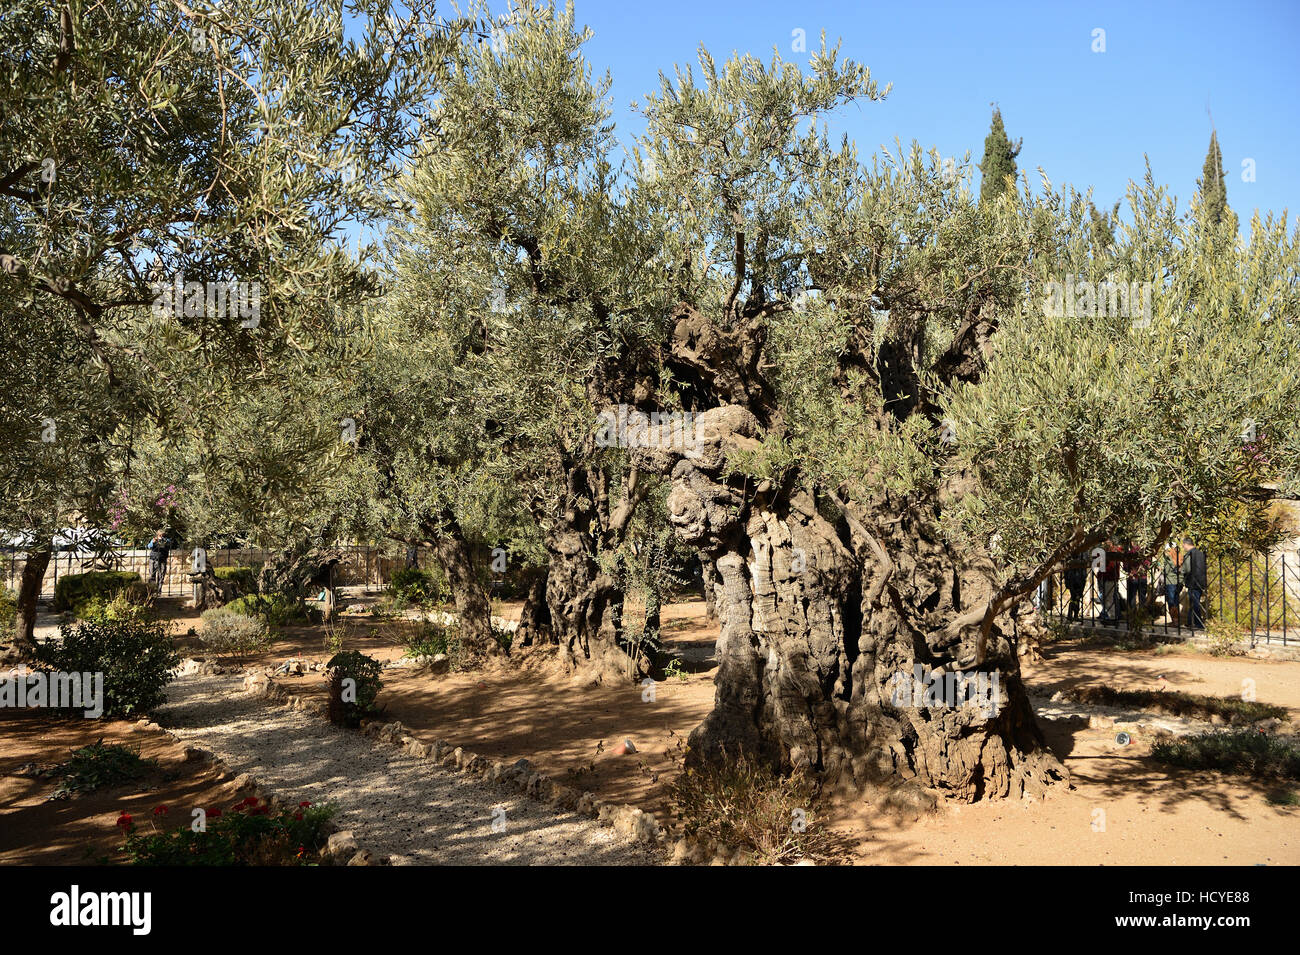 Israel Jerusalem Olive Trees In Stock Photos & Israel Jerusalem ...